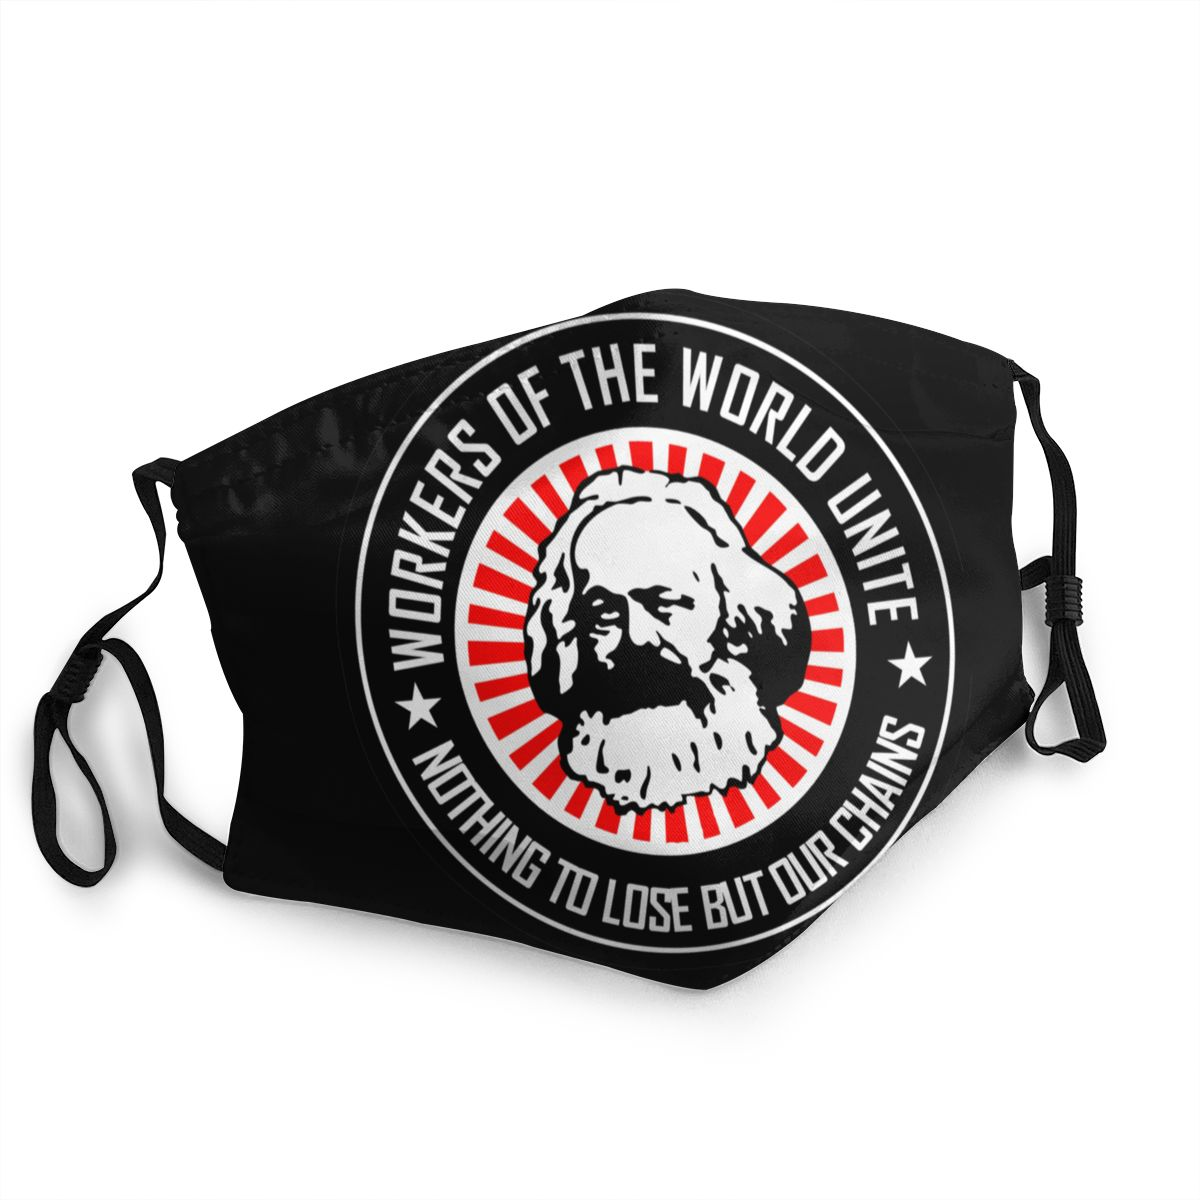 Karl Marx Reusable Face Mask Communism Marxism Socialism Anti Bacterial Dustproof Mask Protection Mask Respirator Mouth Muffle